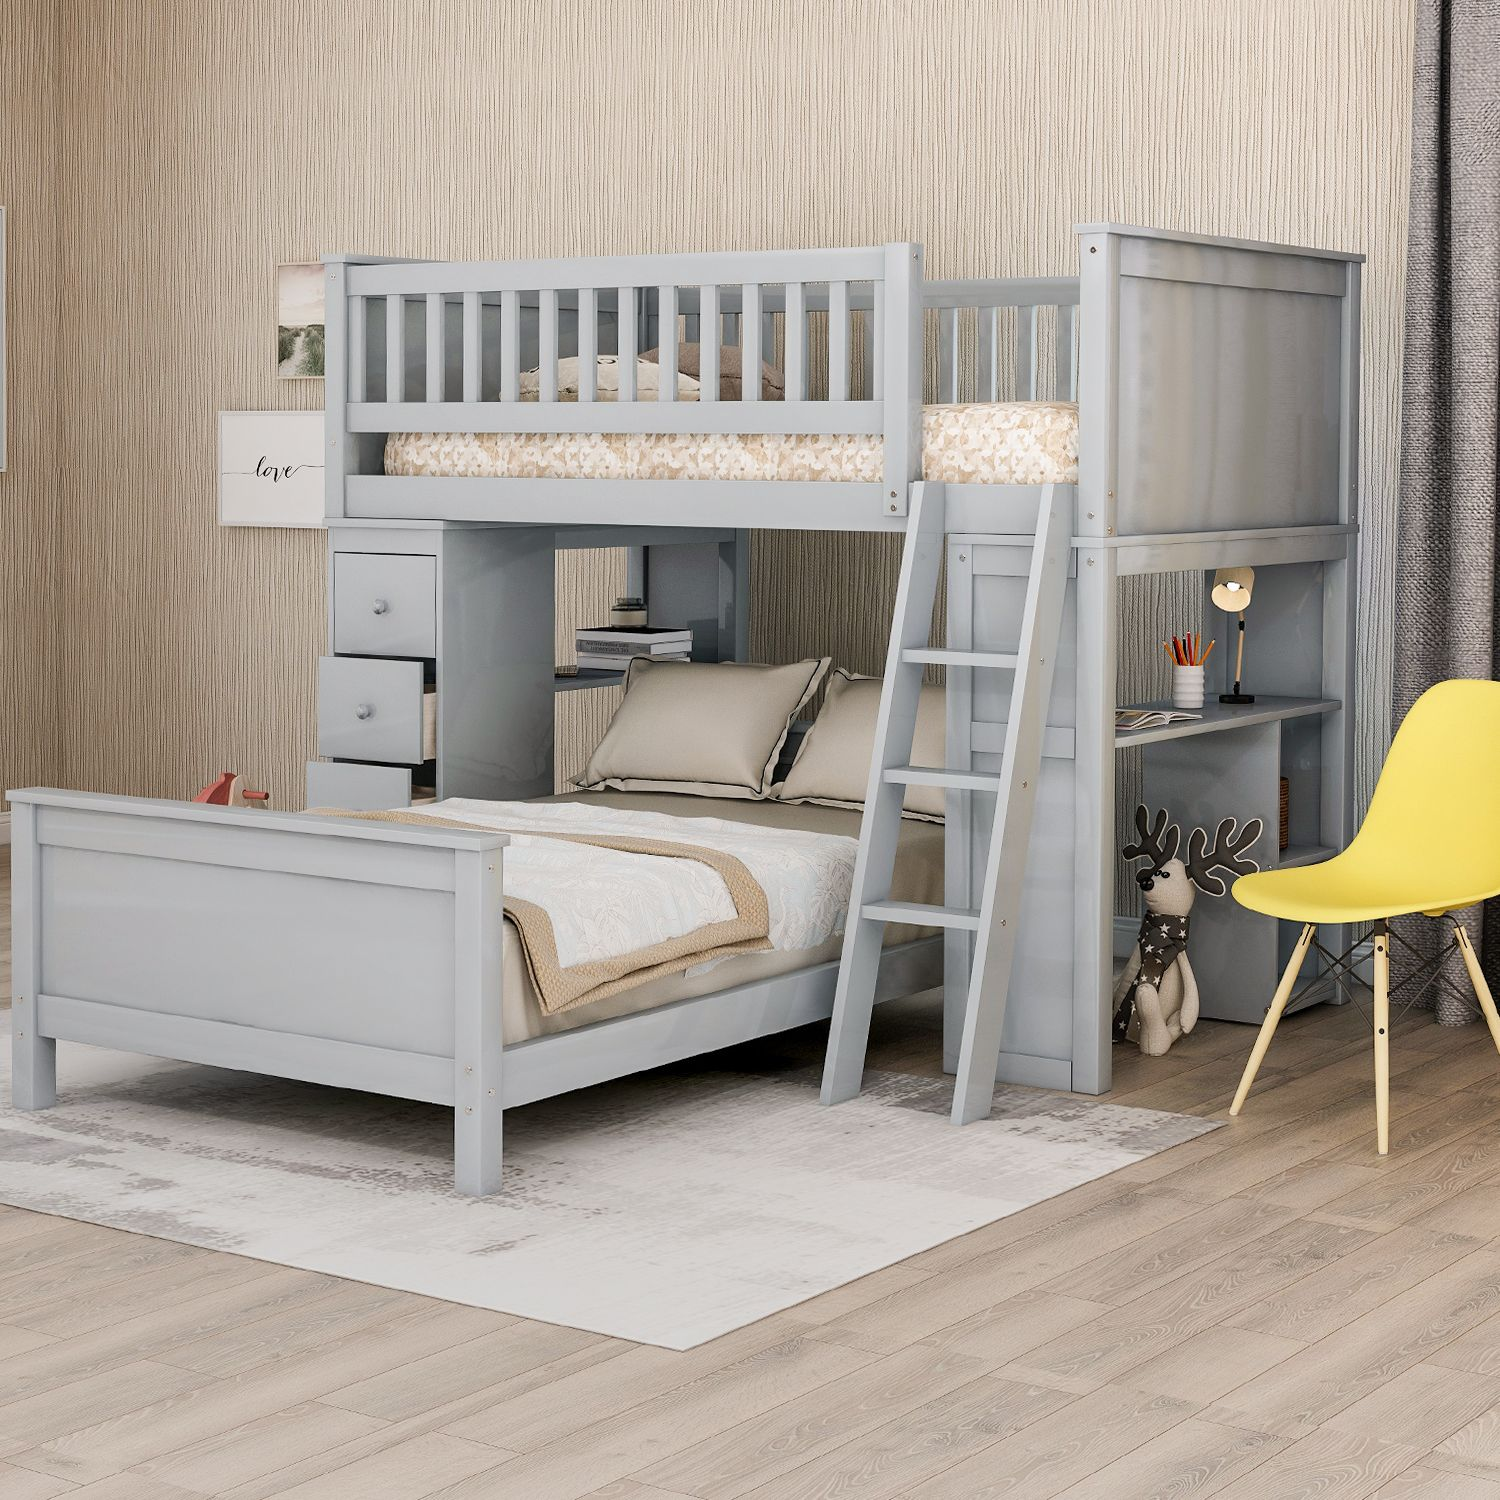 Home In 2020 Twin Bunk Beds Bed Sizes Bed Dimensions